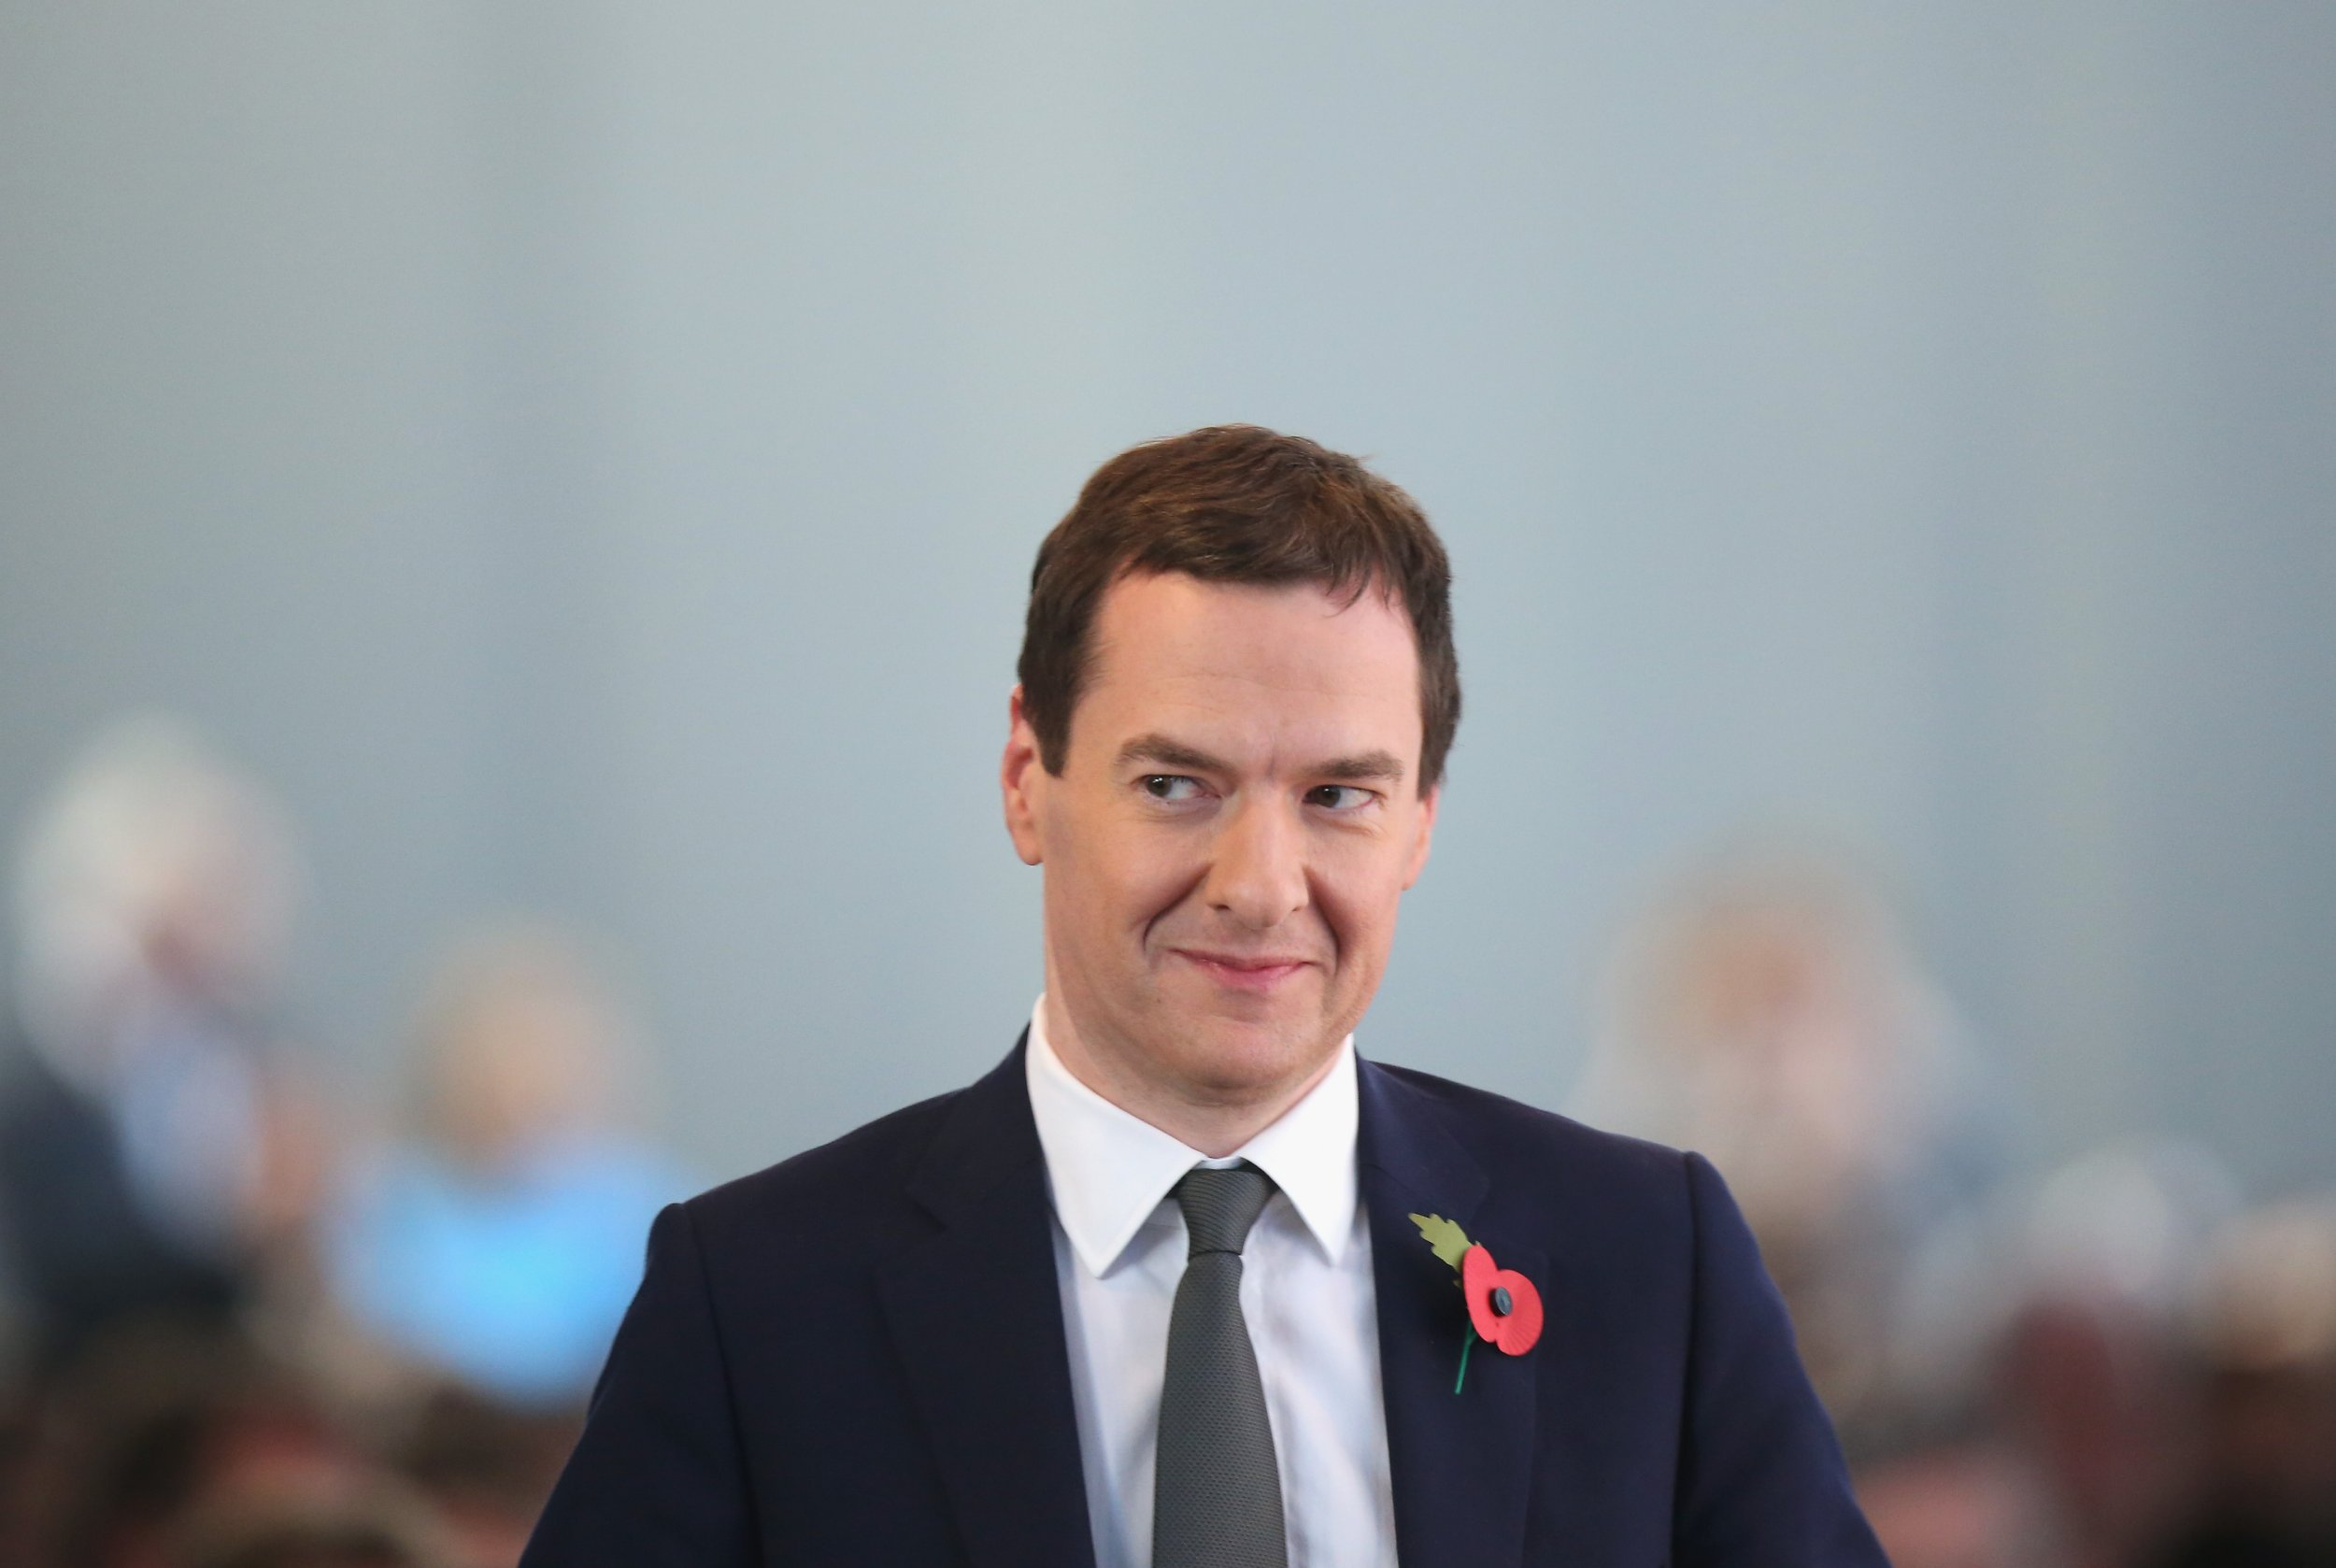 "BERLIN, GERMANY - NOVEMBER 03: British Chancellor of the Exchequer George Osborne attends the ""Day of German Indsutry"" annual gathering on November 3, 2015 in Berlin, Germany. Hosted by the German Federation of Industry (BDI), the annual gathering brings together industrial leaders from across Germany as well as political leaders. (Photo by Sean Gallup/Getty Images)"